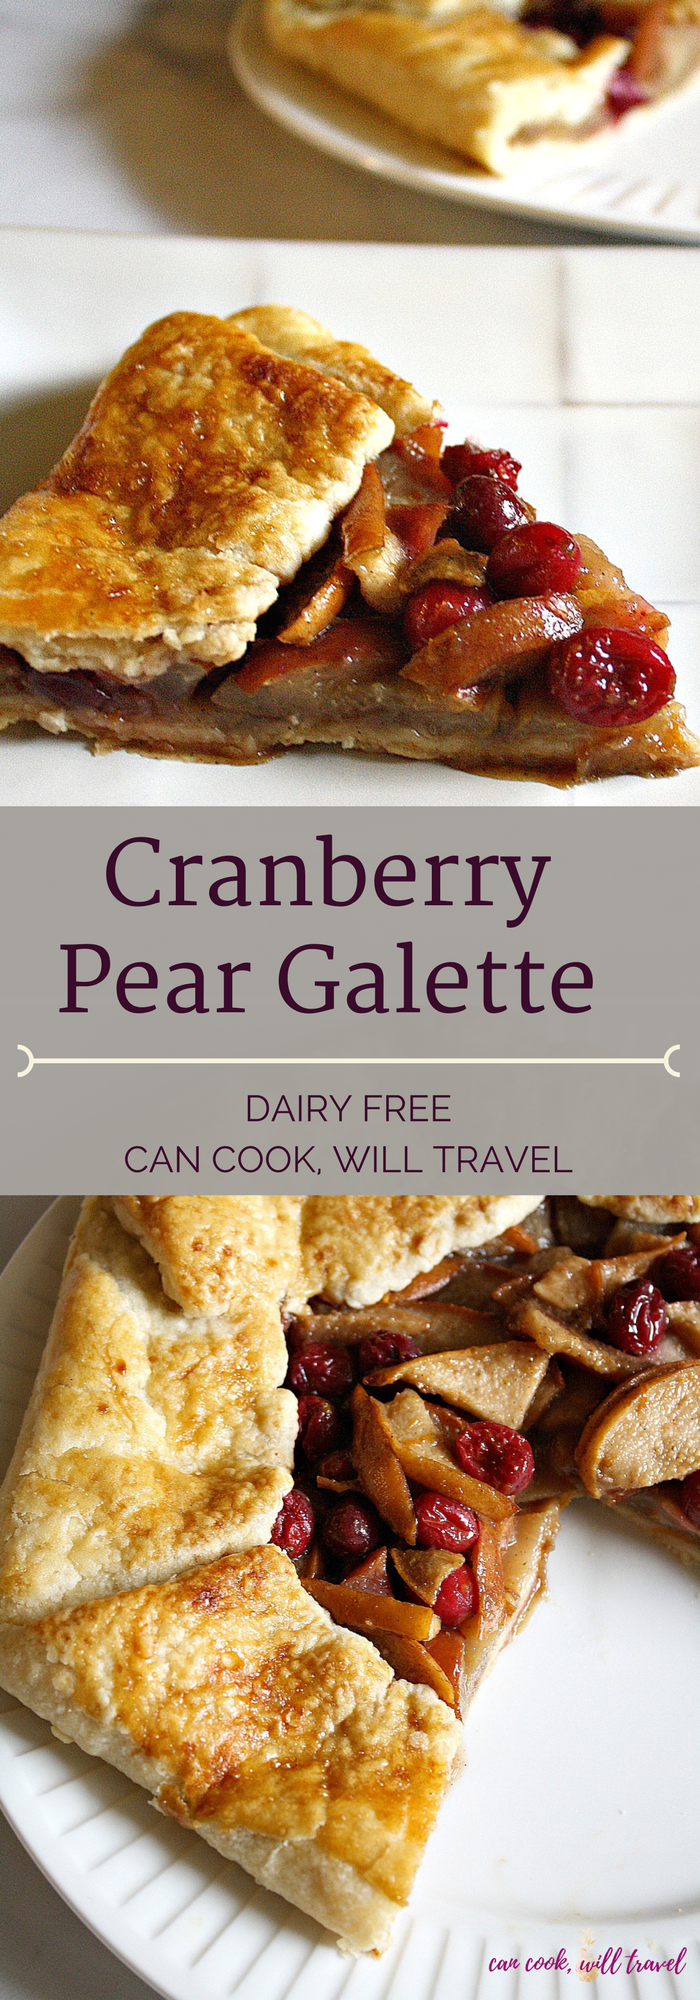 Cranberry Pear Galette_Collage1